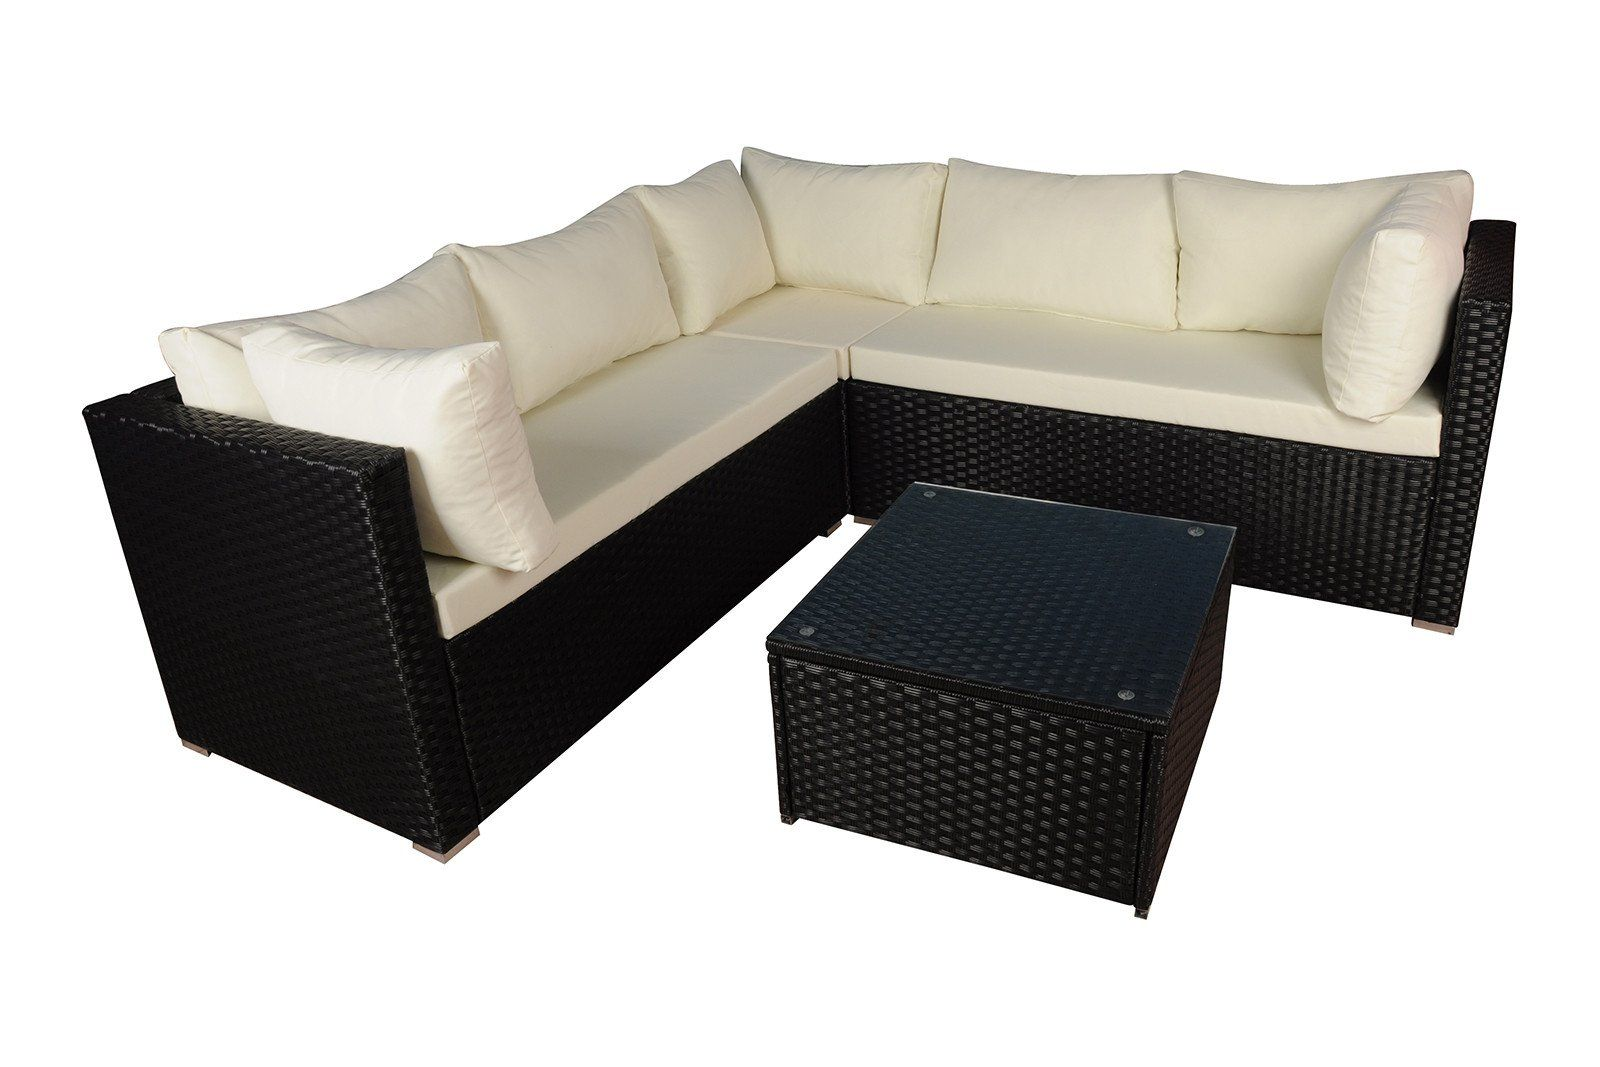 Honolulu Modern Outdoor Sectional with Coffee Table ...